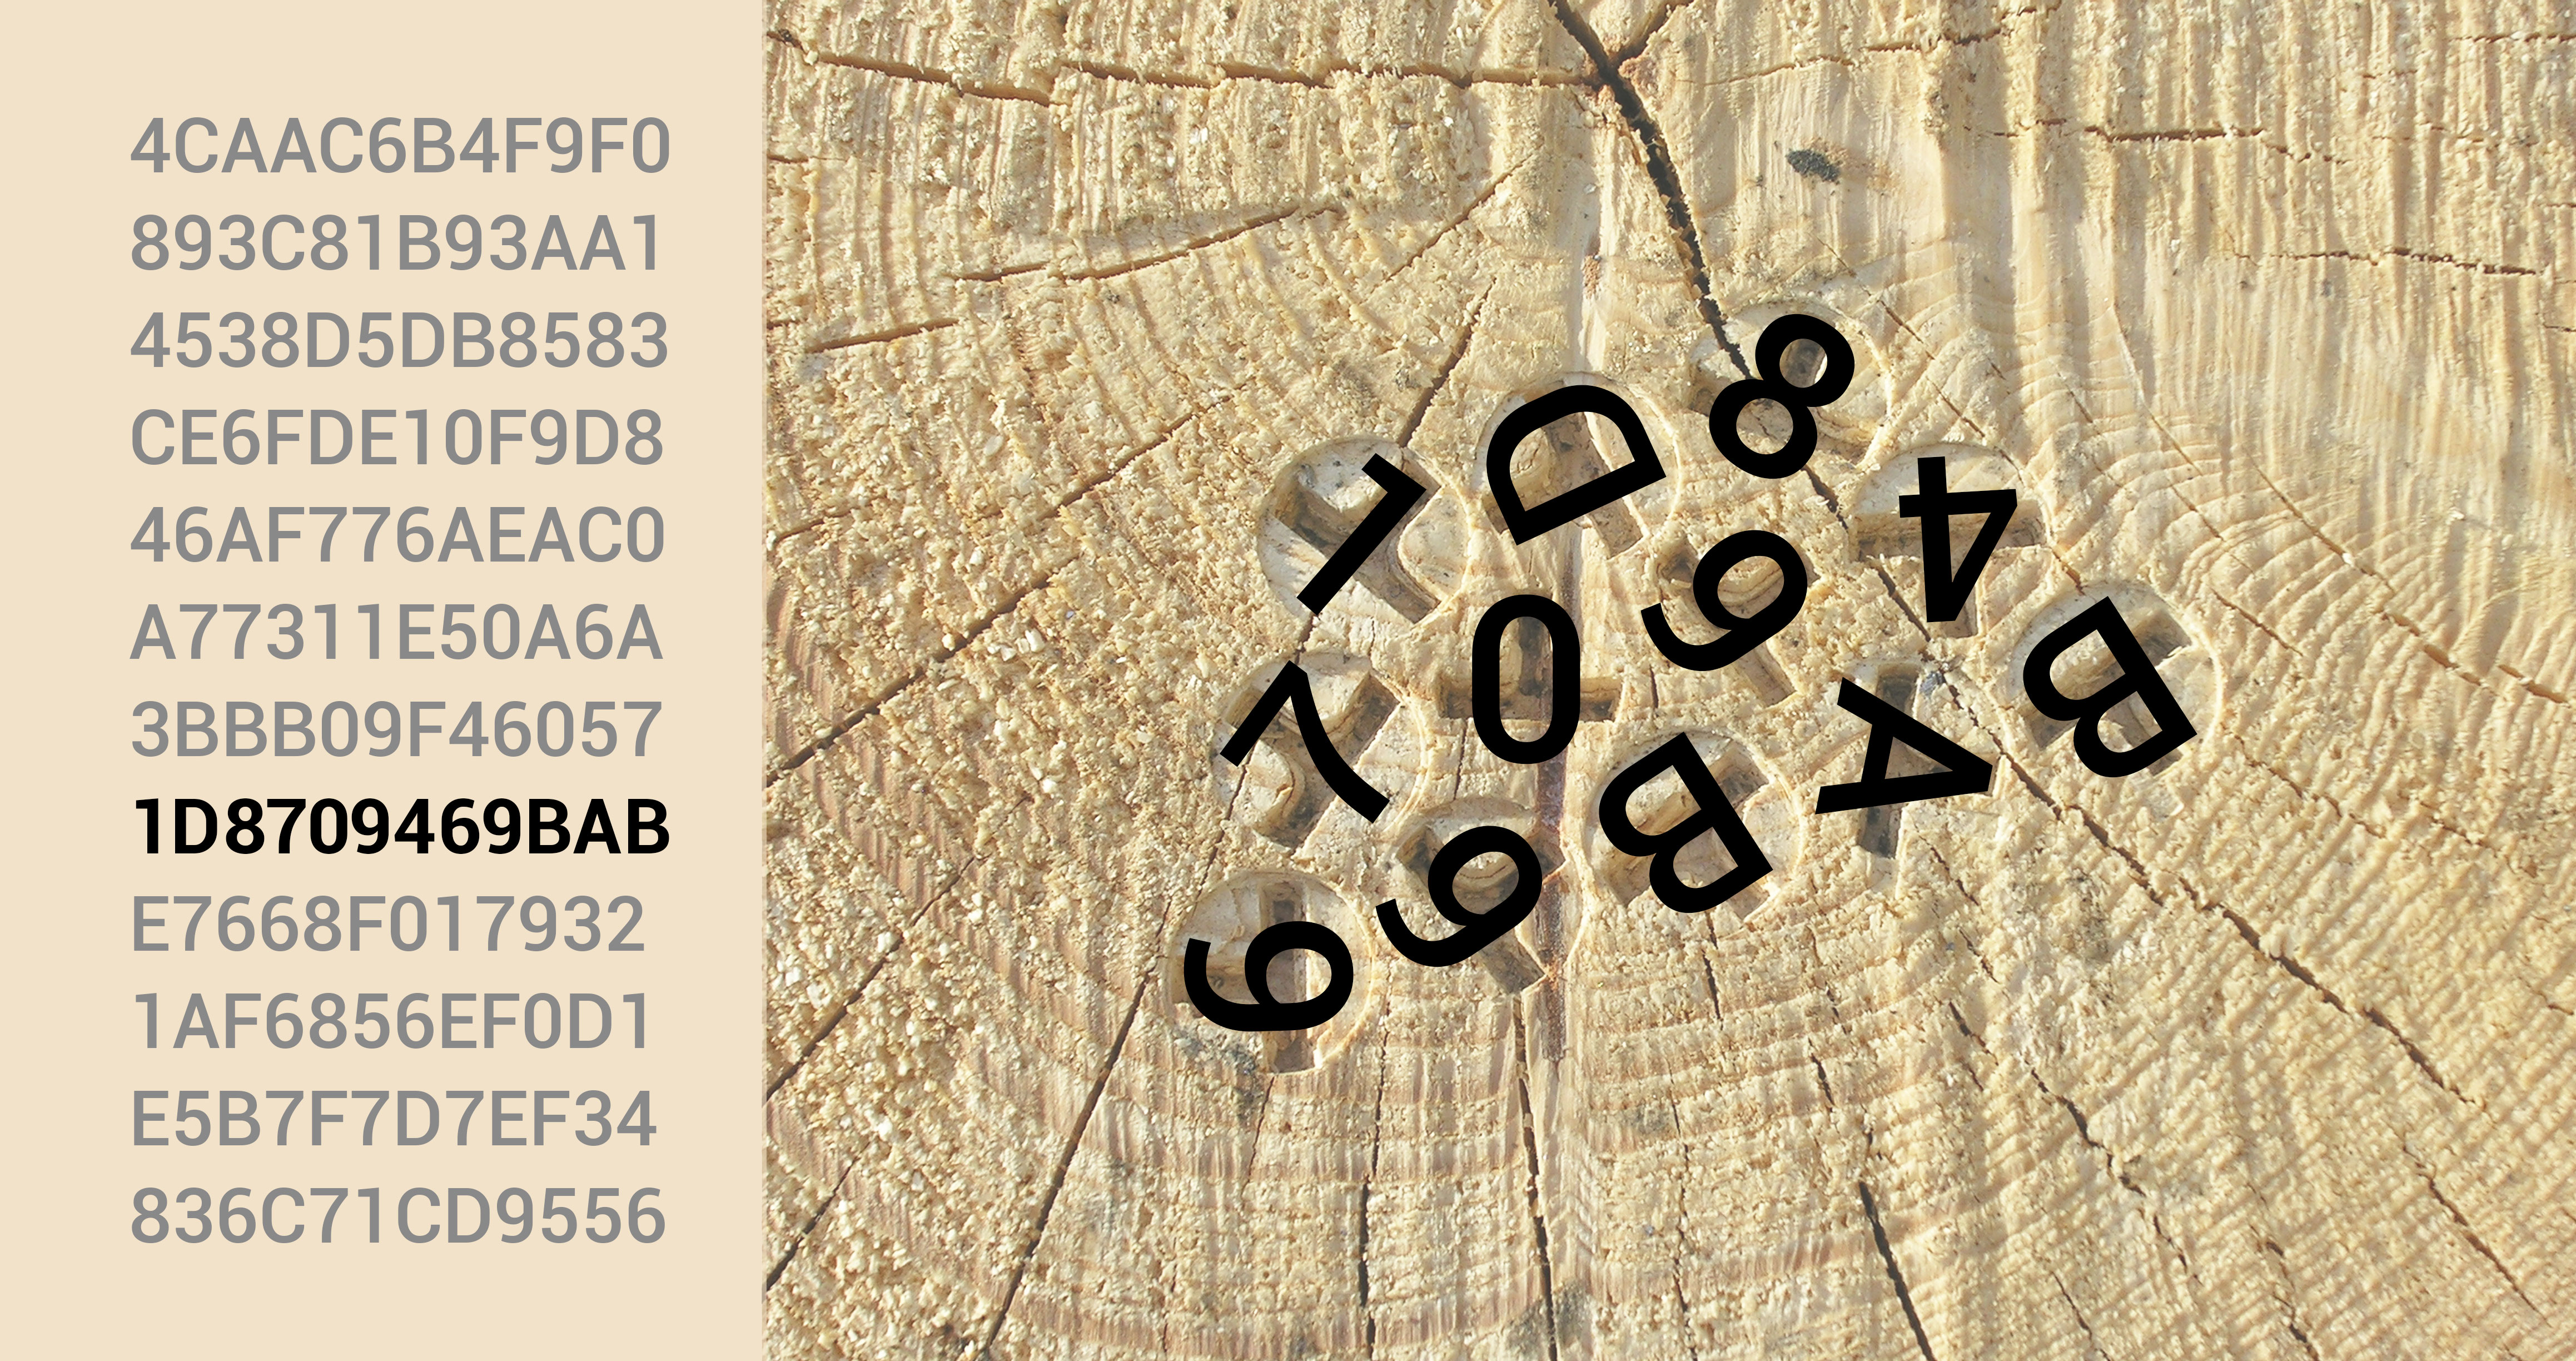 OtmetkaID marking system is based on hexadecimal codes, which ensures that a globally unique code is generated for each log. The data memory also stores a public code (public key), which also has a secret private code (private key).